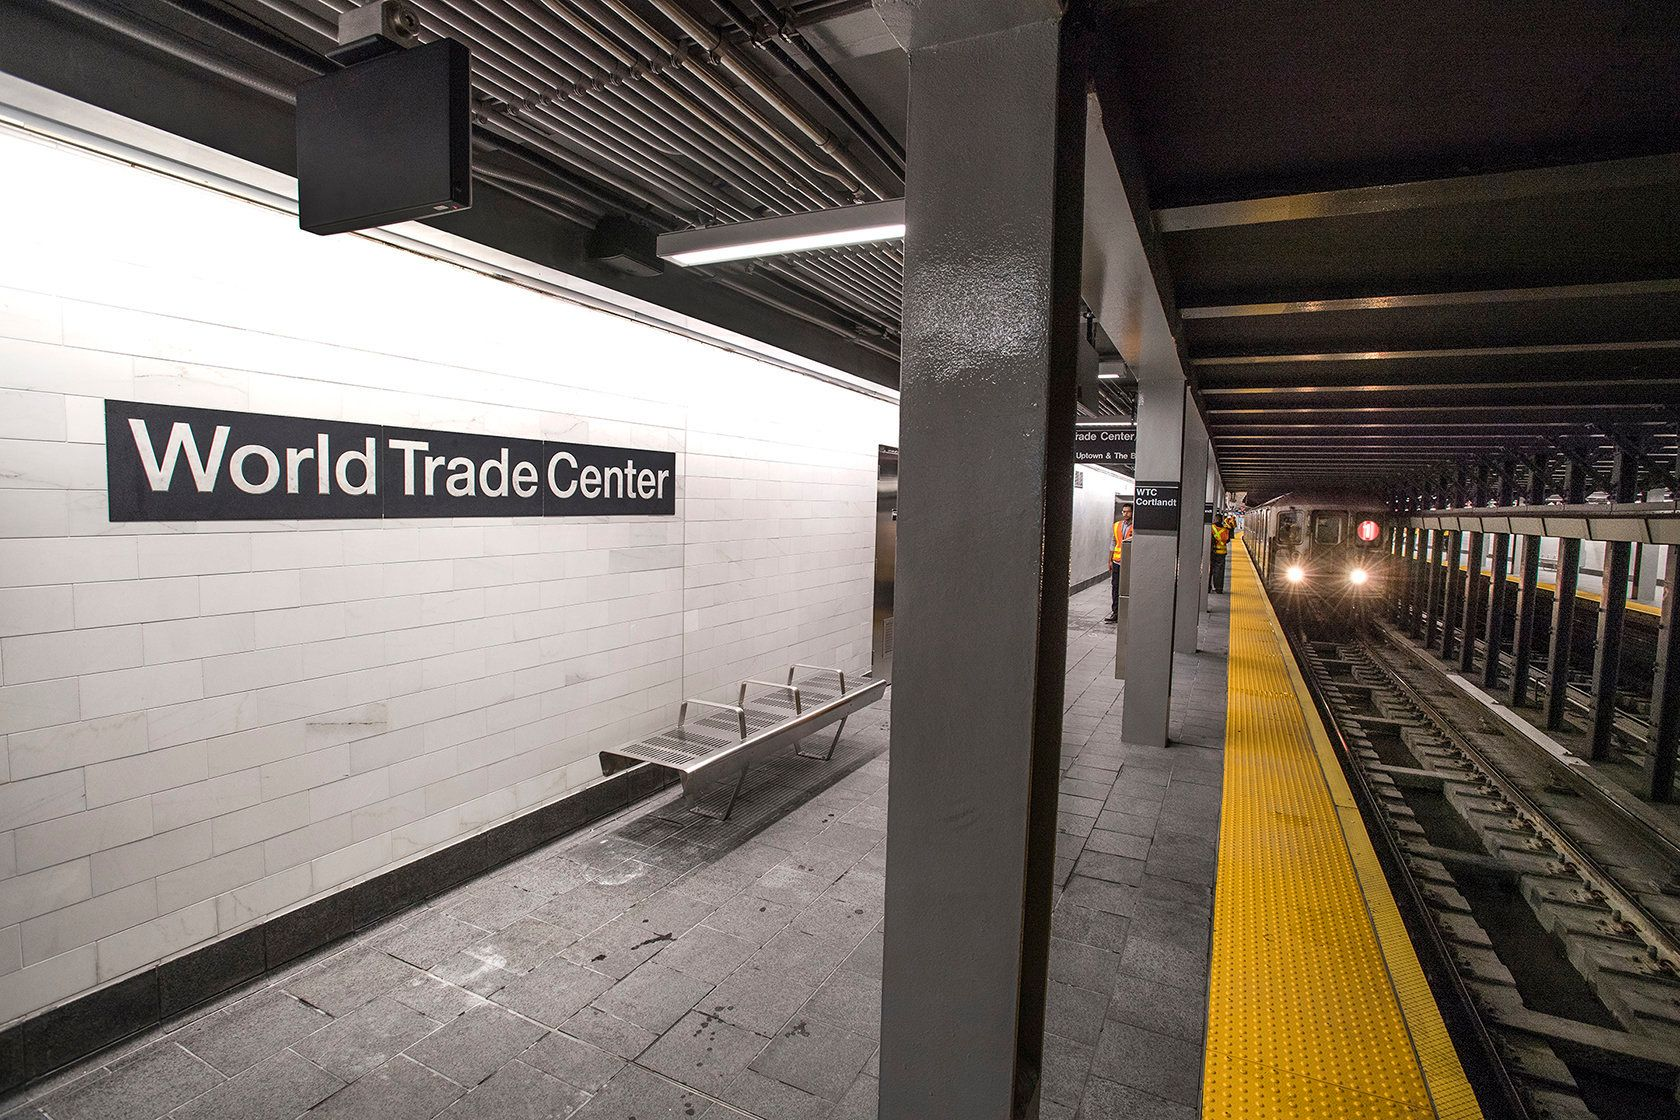 WTC Cortlandt opened on Saturday The station and its 1200-feet of tunnel and tracks were rebuilt within the same footprint of the previous station